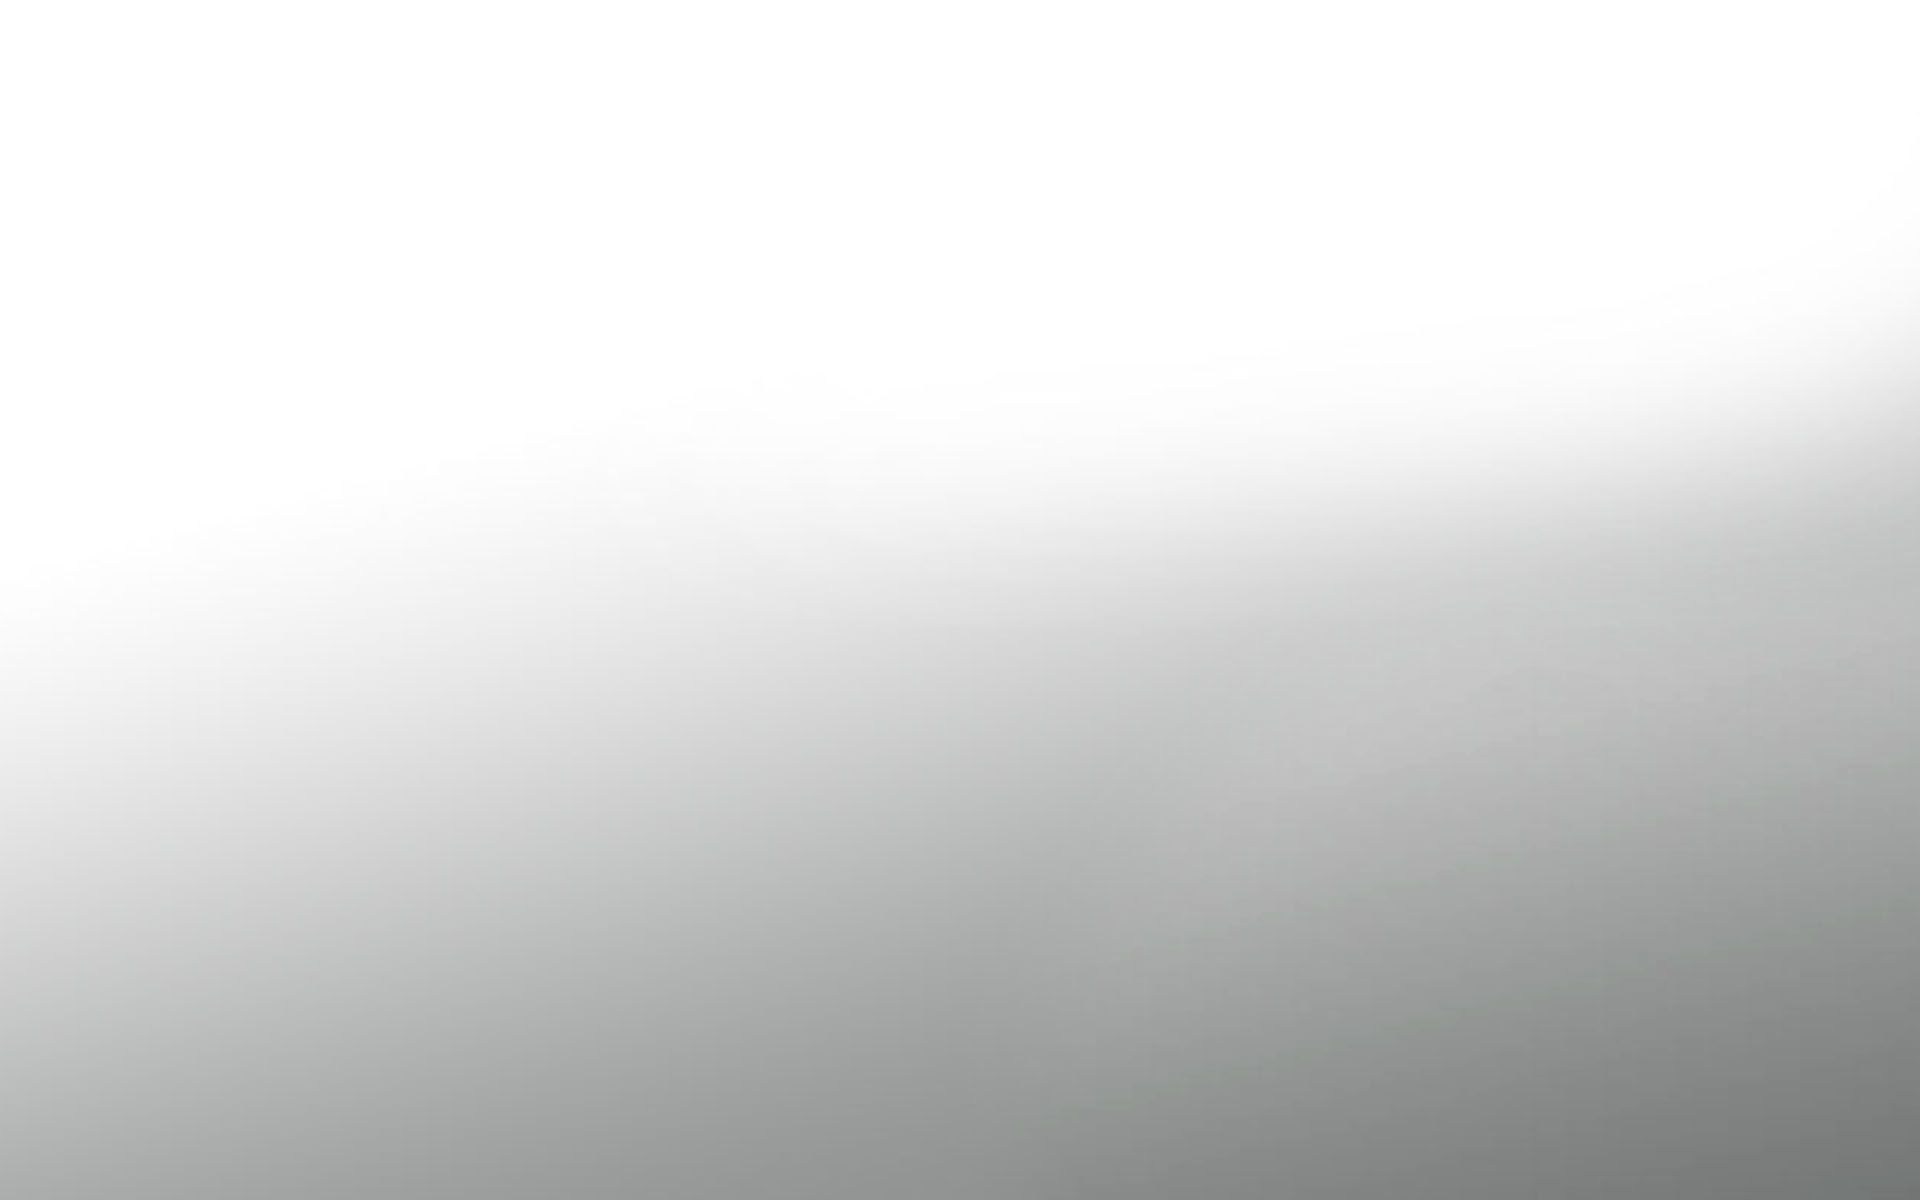 1920x1200 Black, white, gradient (#36527)